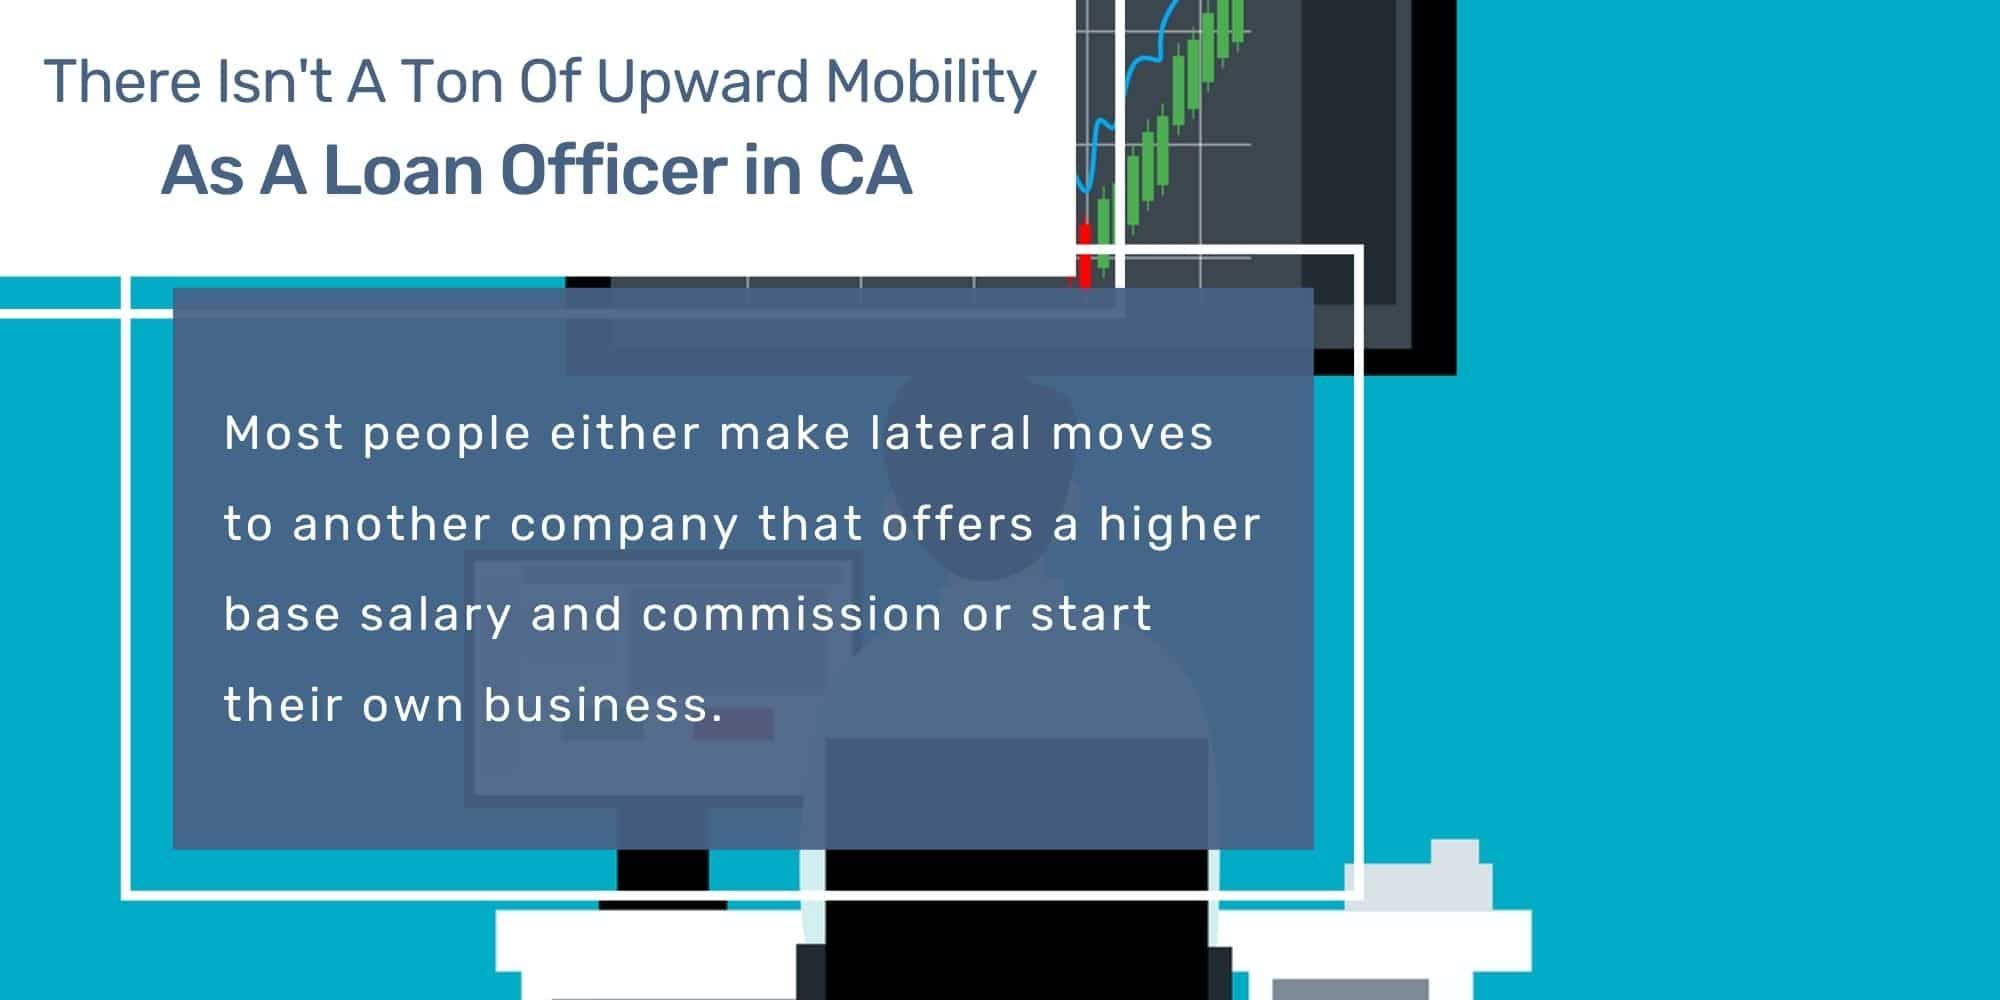 Mortgage Loan Officer Upward Mobility